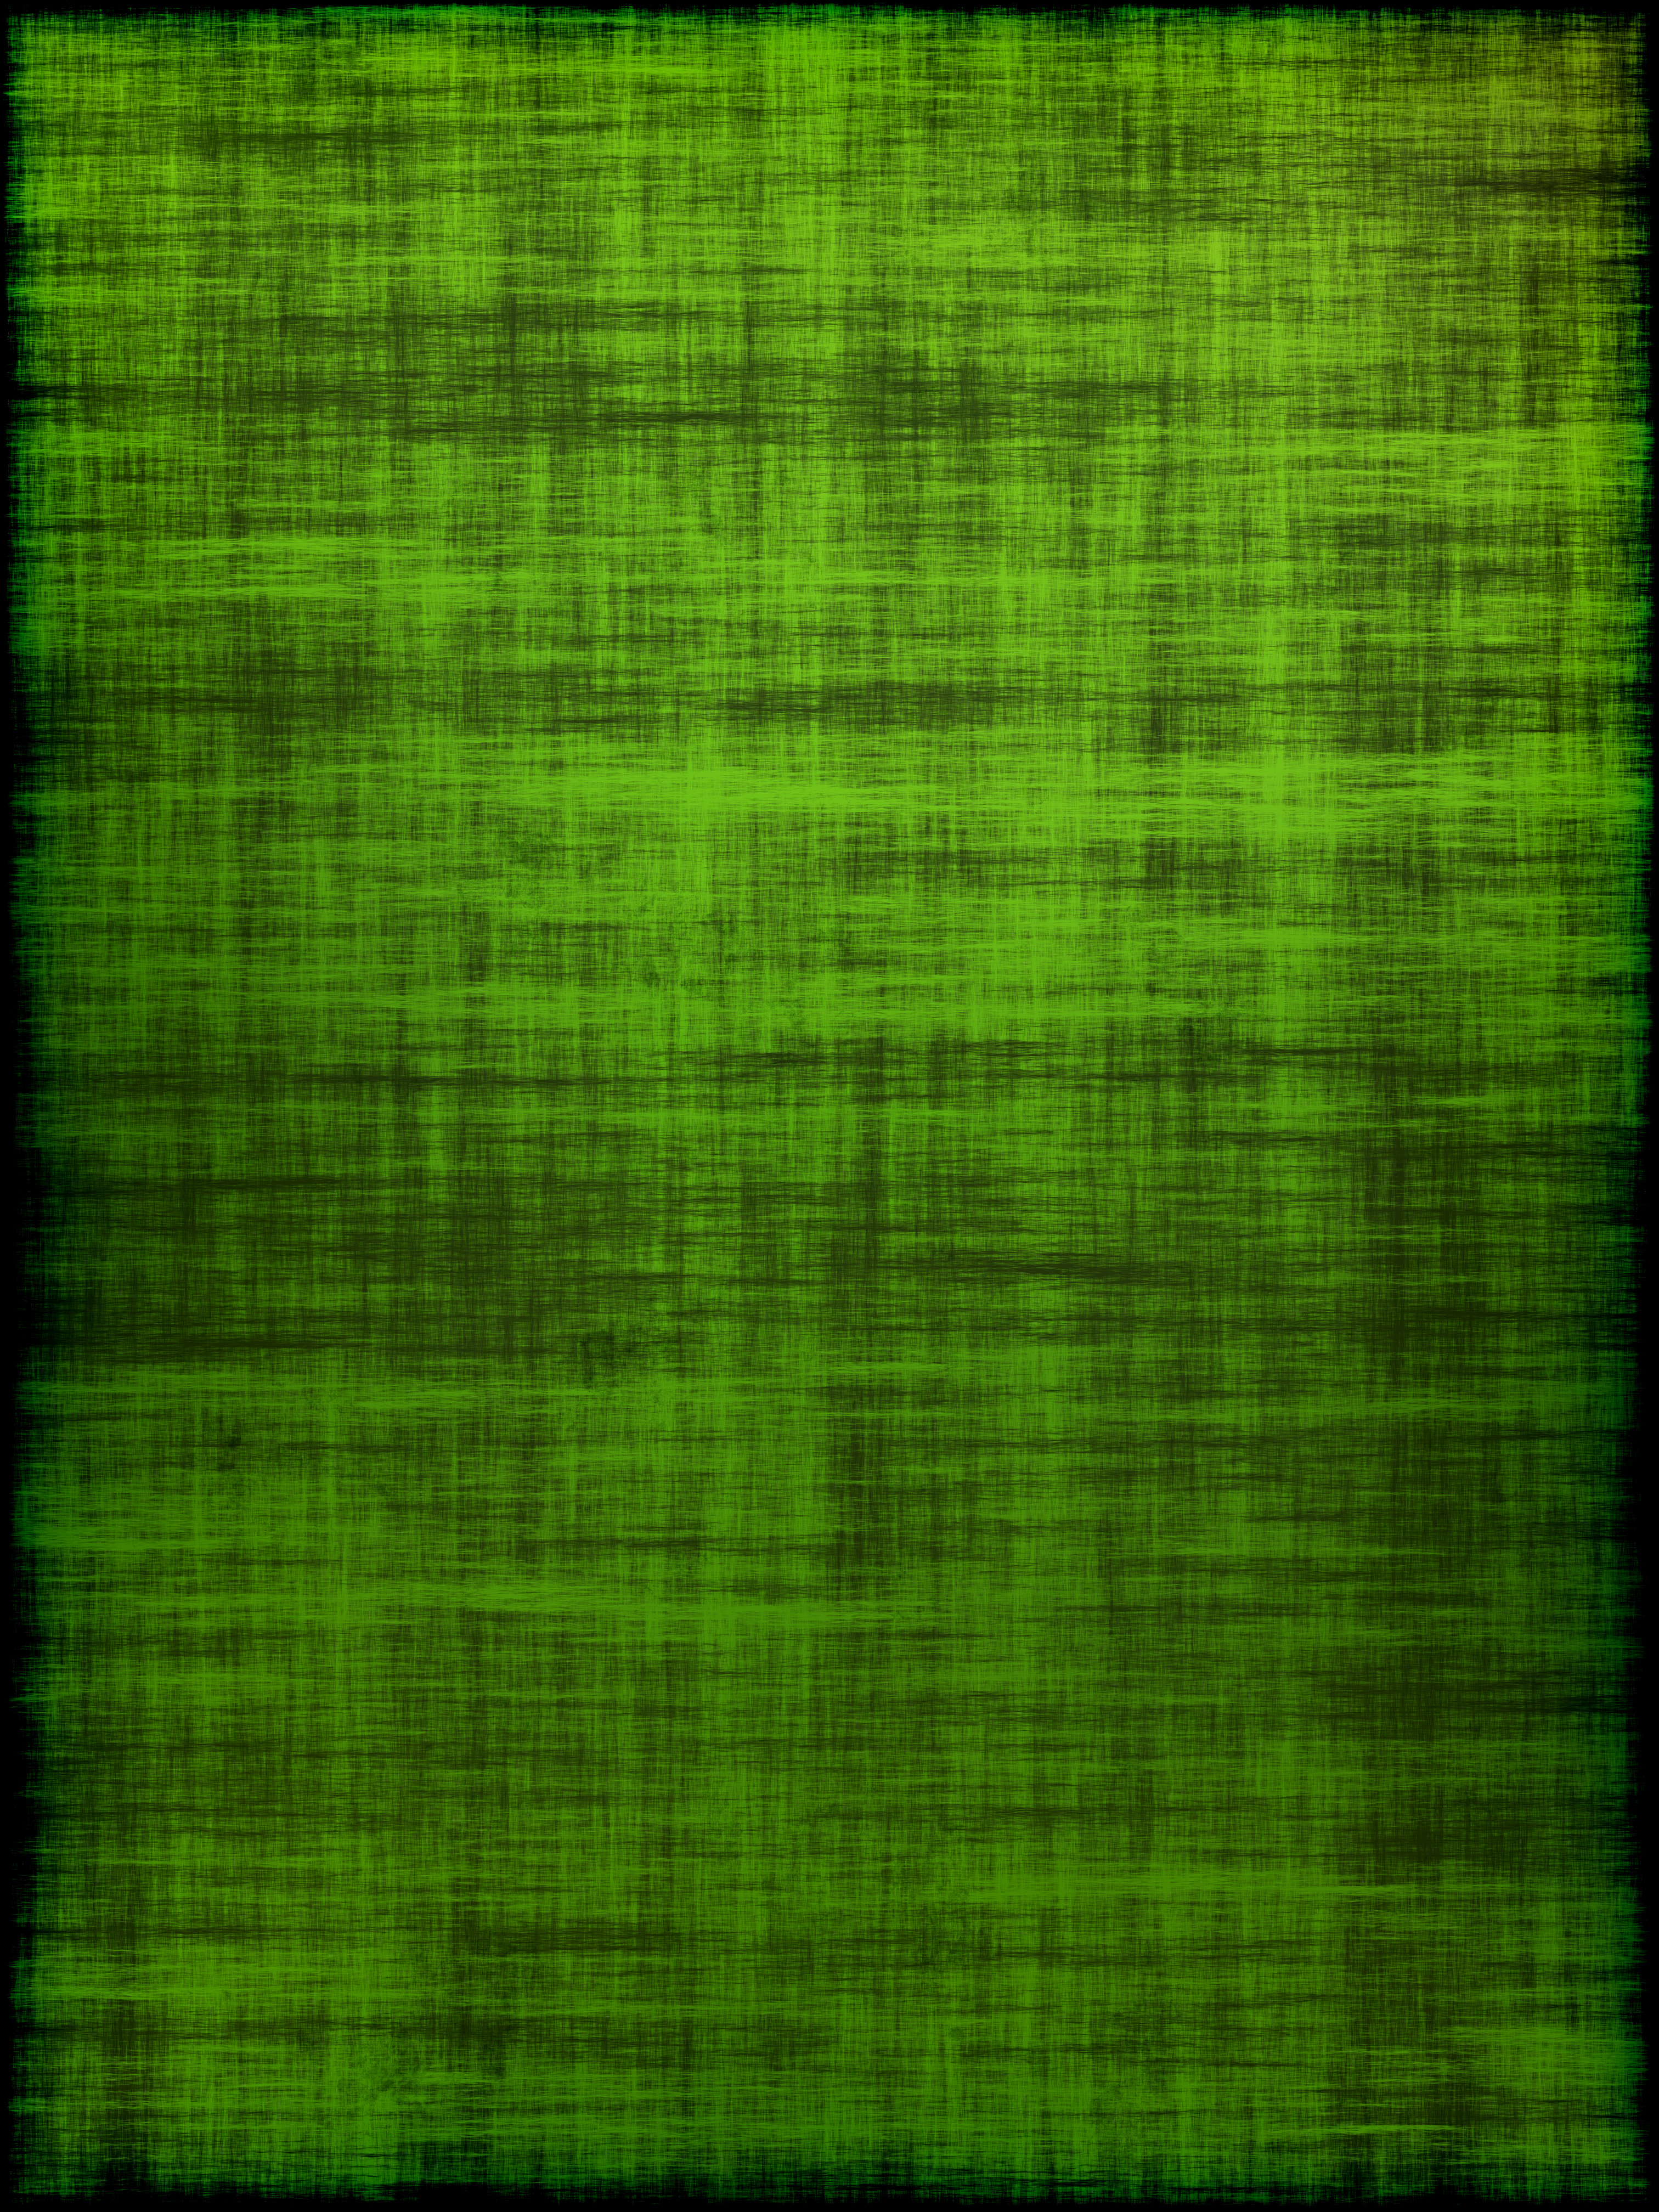 Grunge Texture On Green Background Public Domain Photos